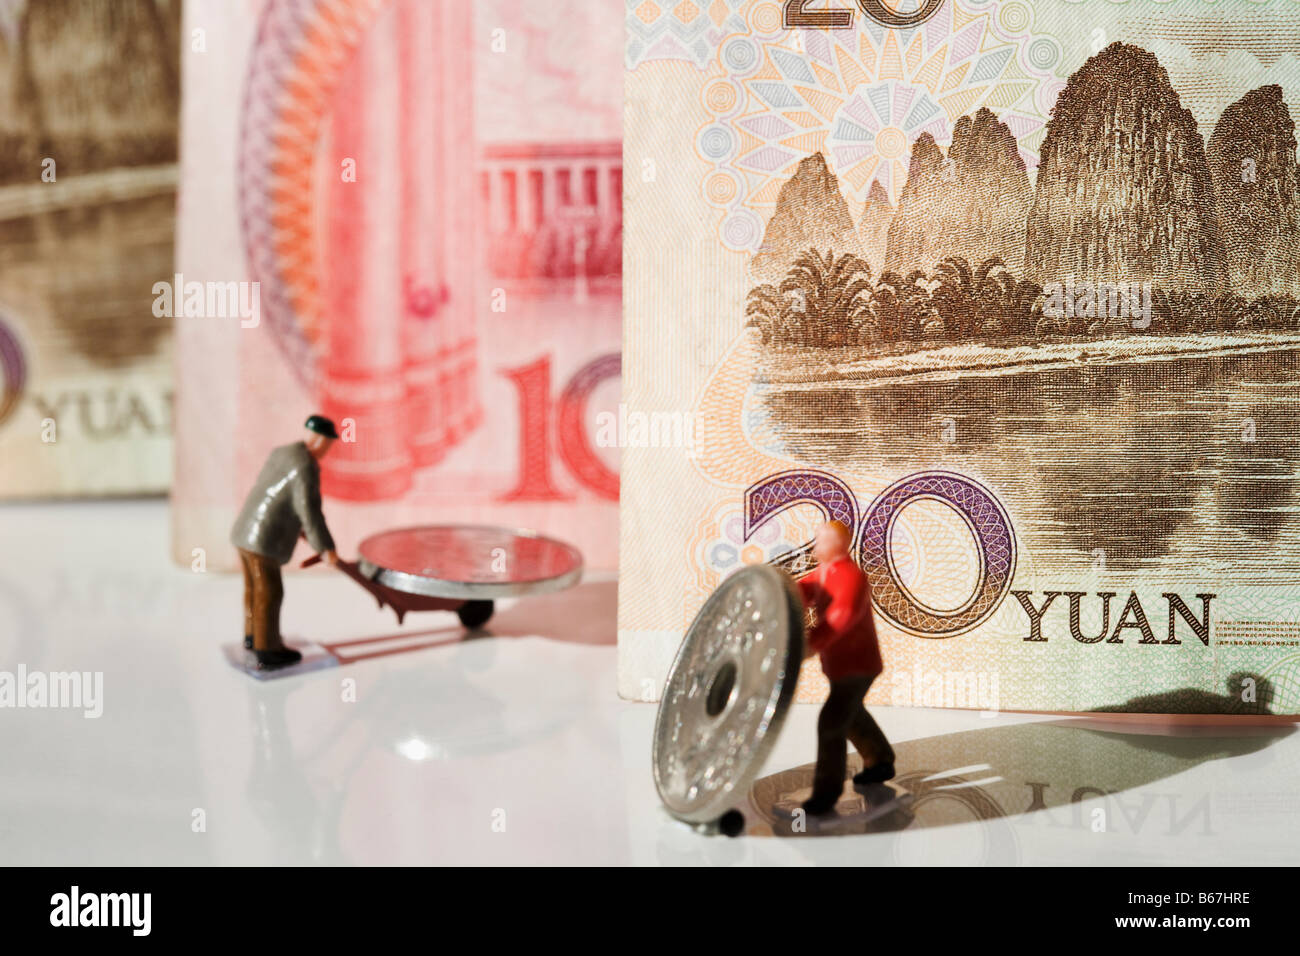 Figurines of manual workers pushing Chinese coins on push carts - Stock Image